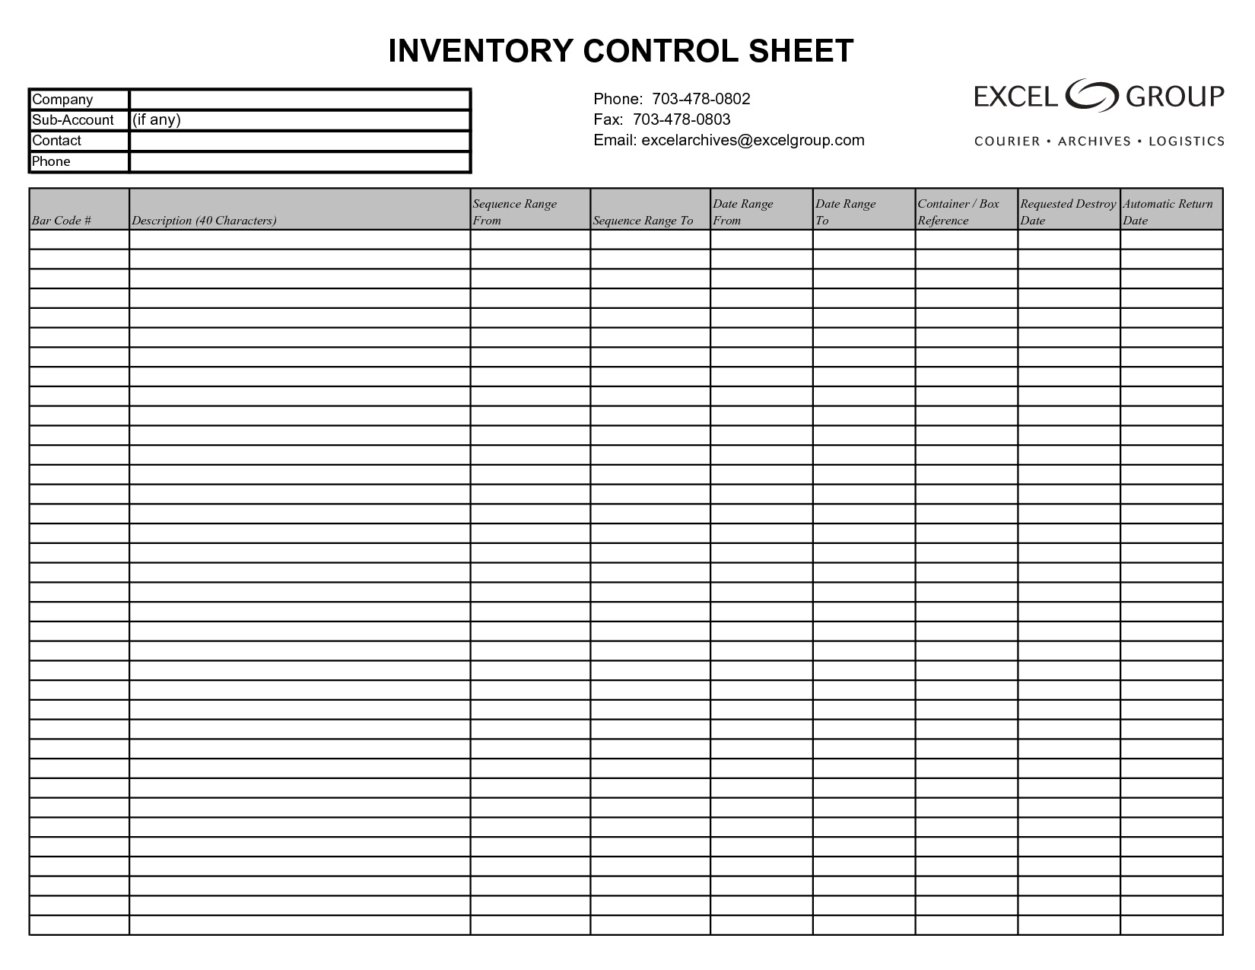 Inventory Spreadsheet Template Excel Product Tracking | My Throughout Inventory Tracking Templates